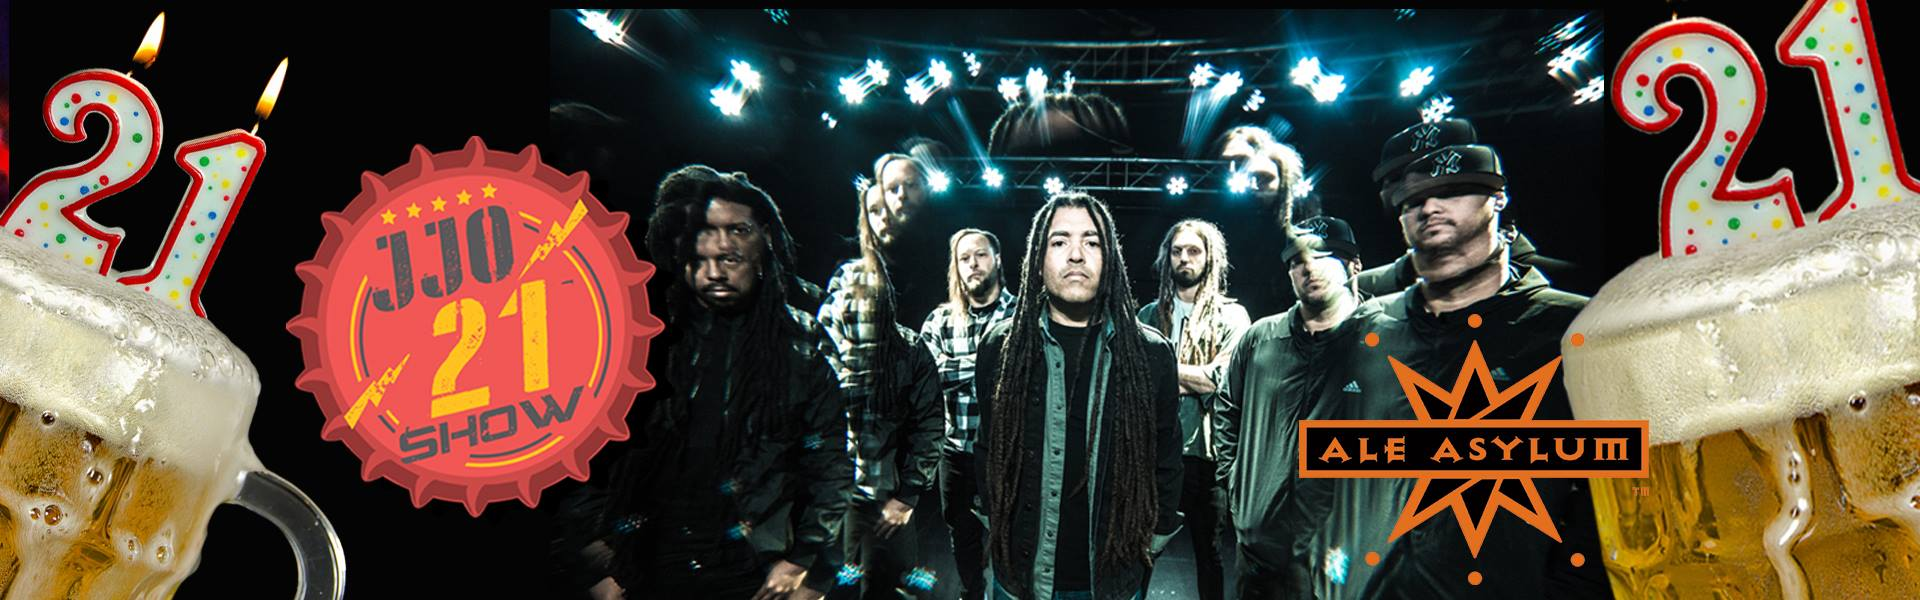 CONTEST: JJO 21 Show featuring Nonpoint